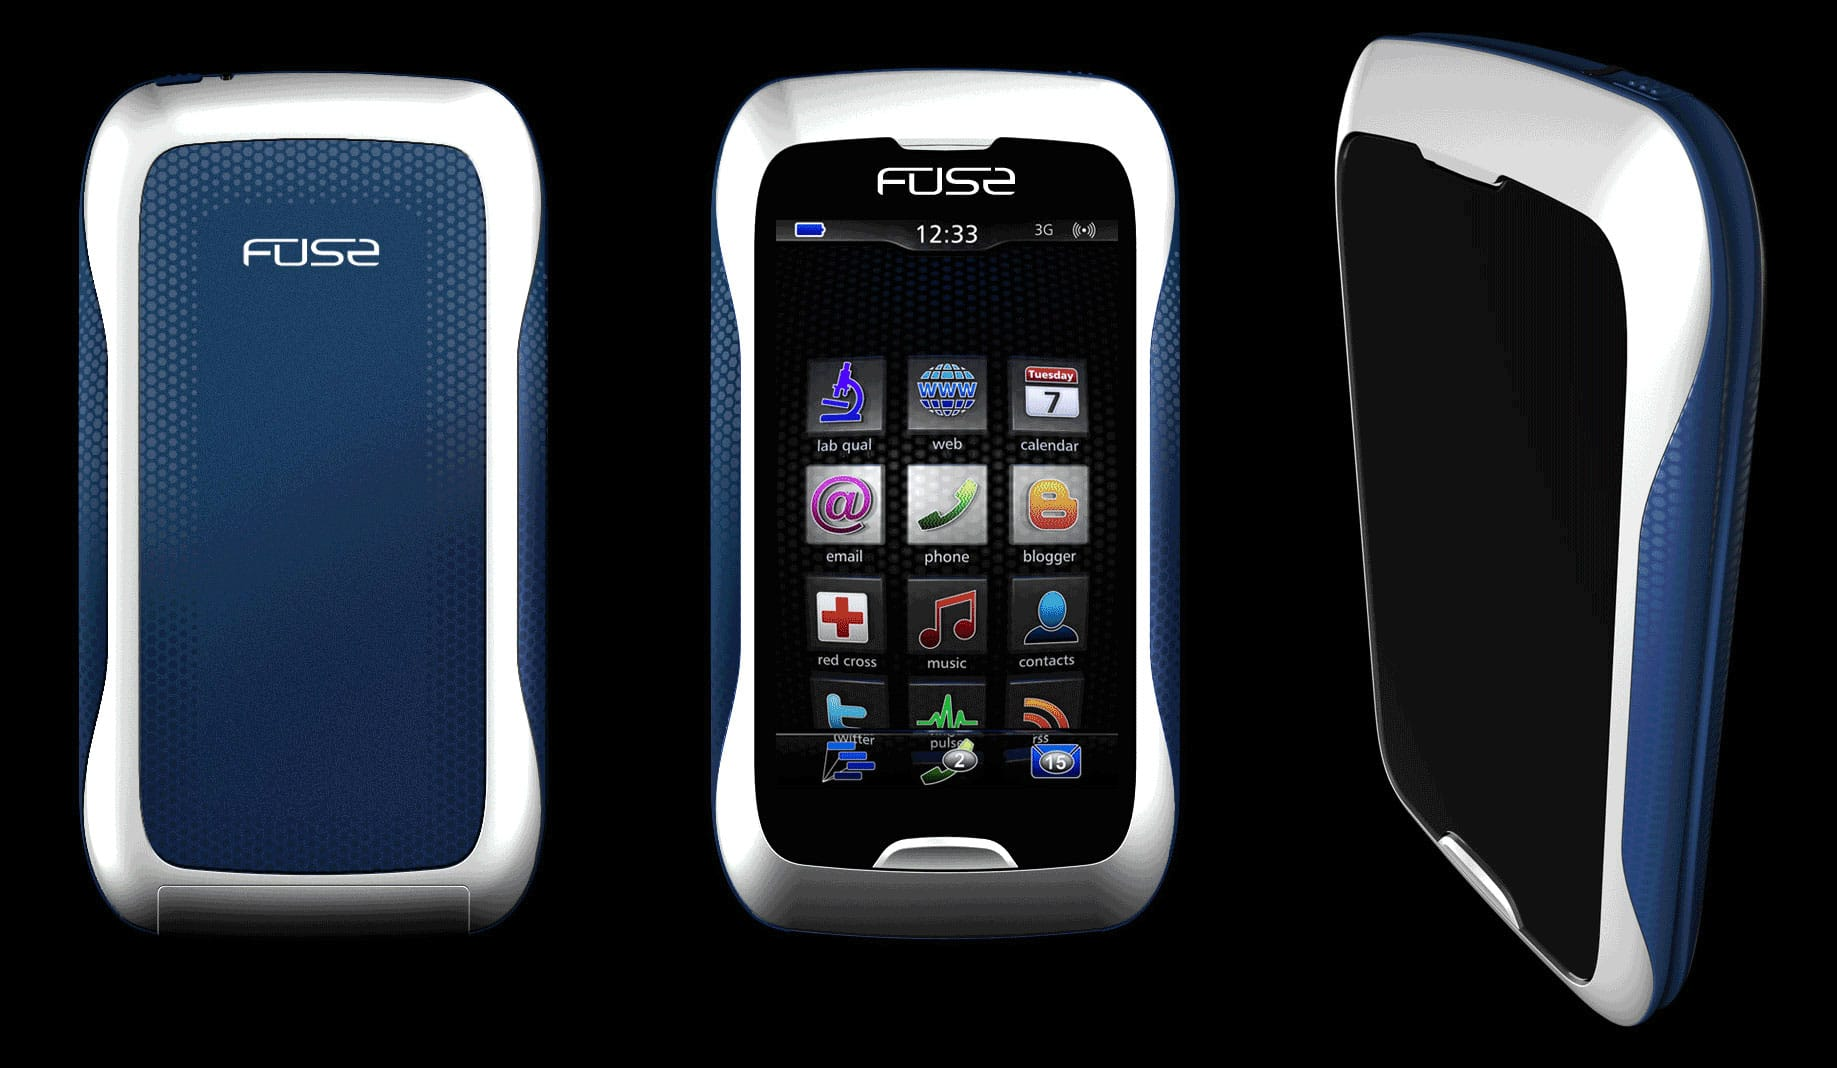 Fuse - Concept Phone